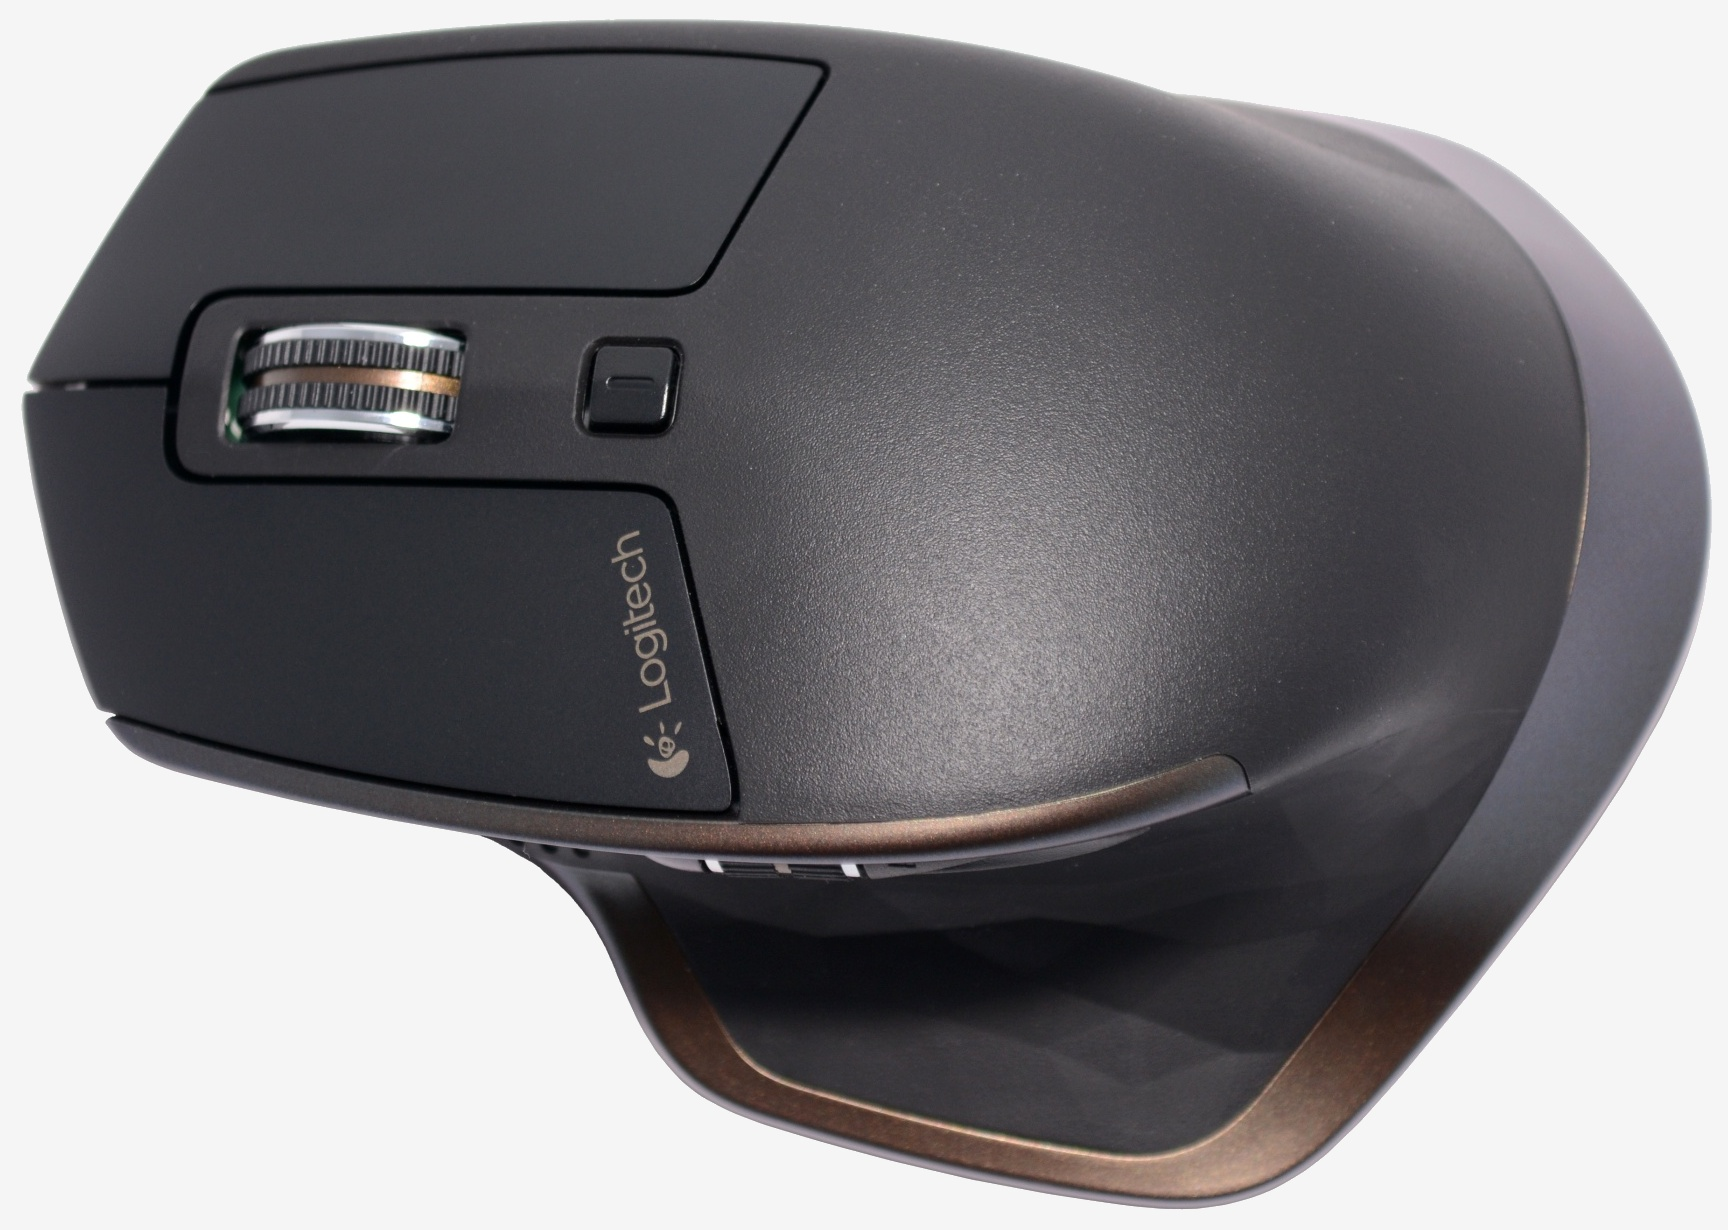 Logitech MX Master Wireless Mouse Review > Performance